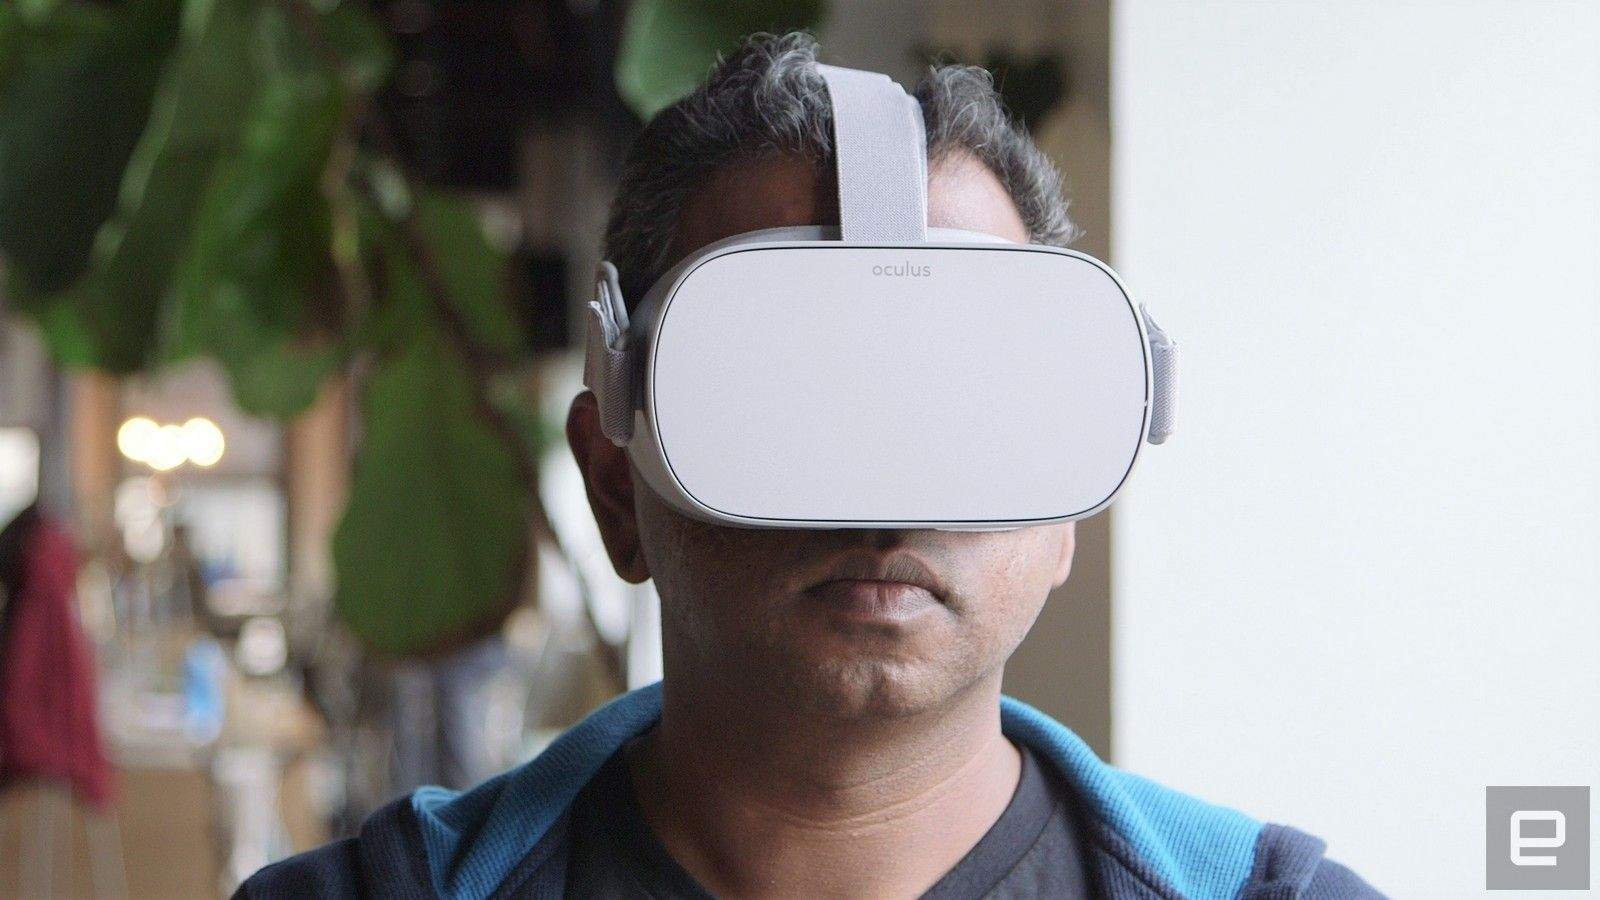 Facebook discontinues Oculus Go headset to focus on the Quest